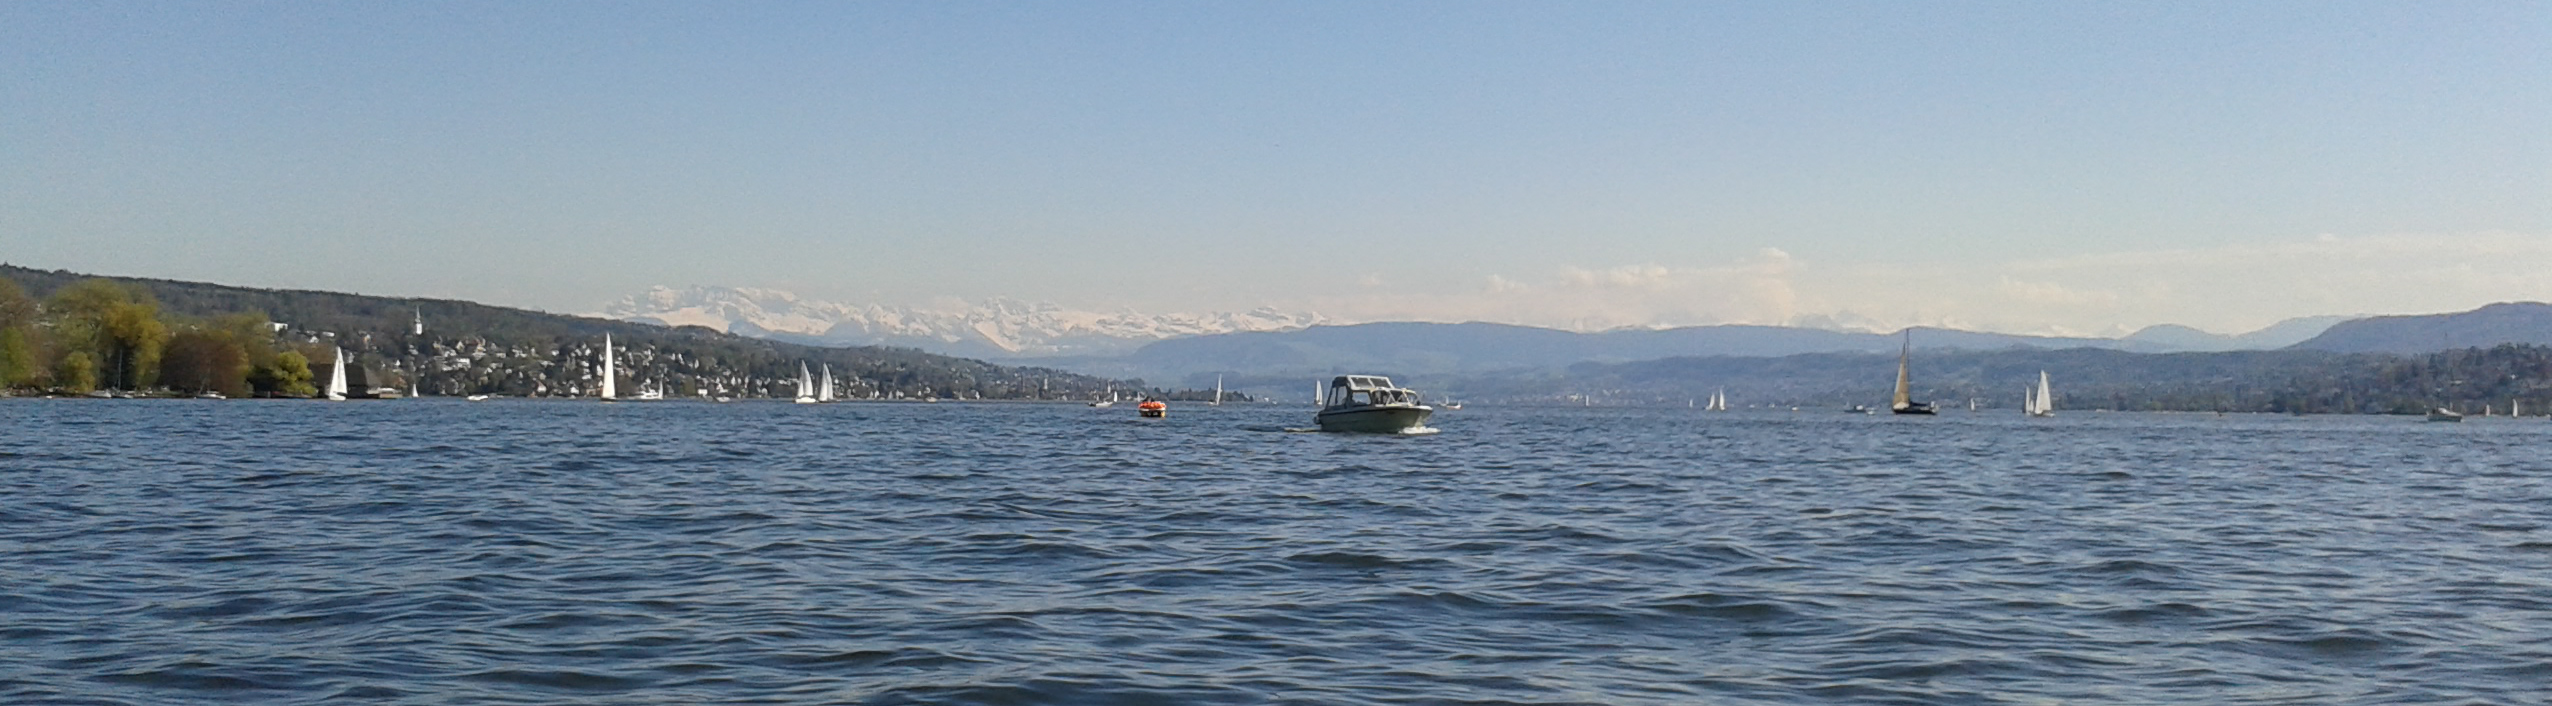 A view of the Alpes and the lake of Zürich (taken on the lake)